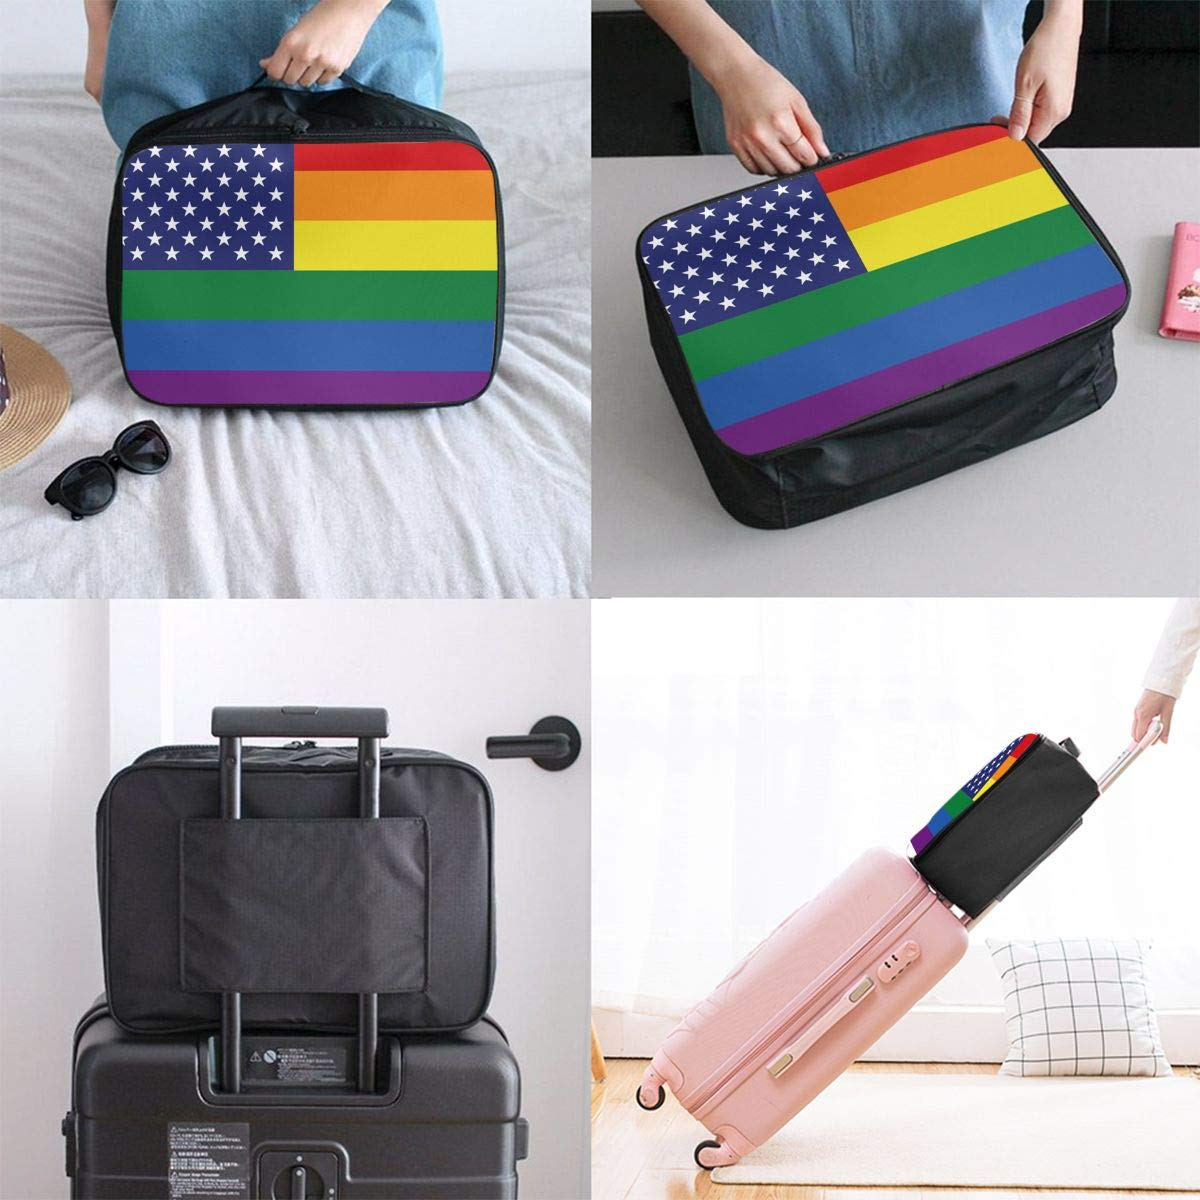 YueLJB United States Gay Pride Flag Lightweight Large Capacity Portable Luggage Bag Travel Duffel Bag Storage Carry Luggage Duffle Tote Bag